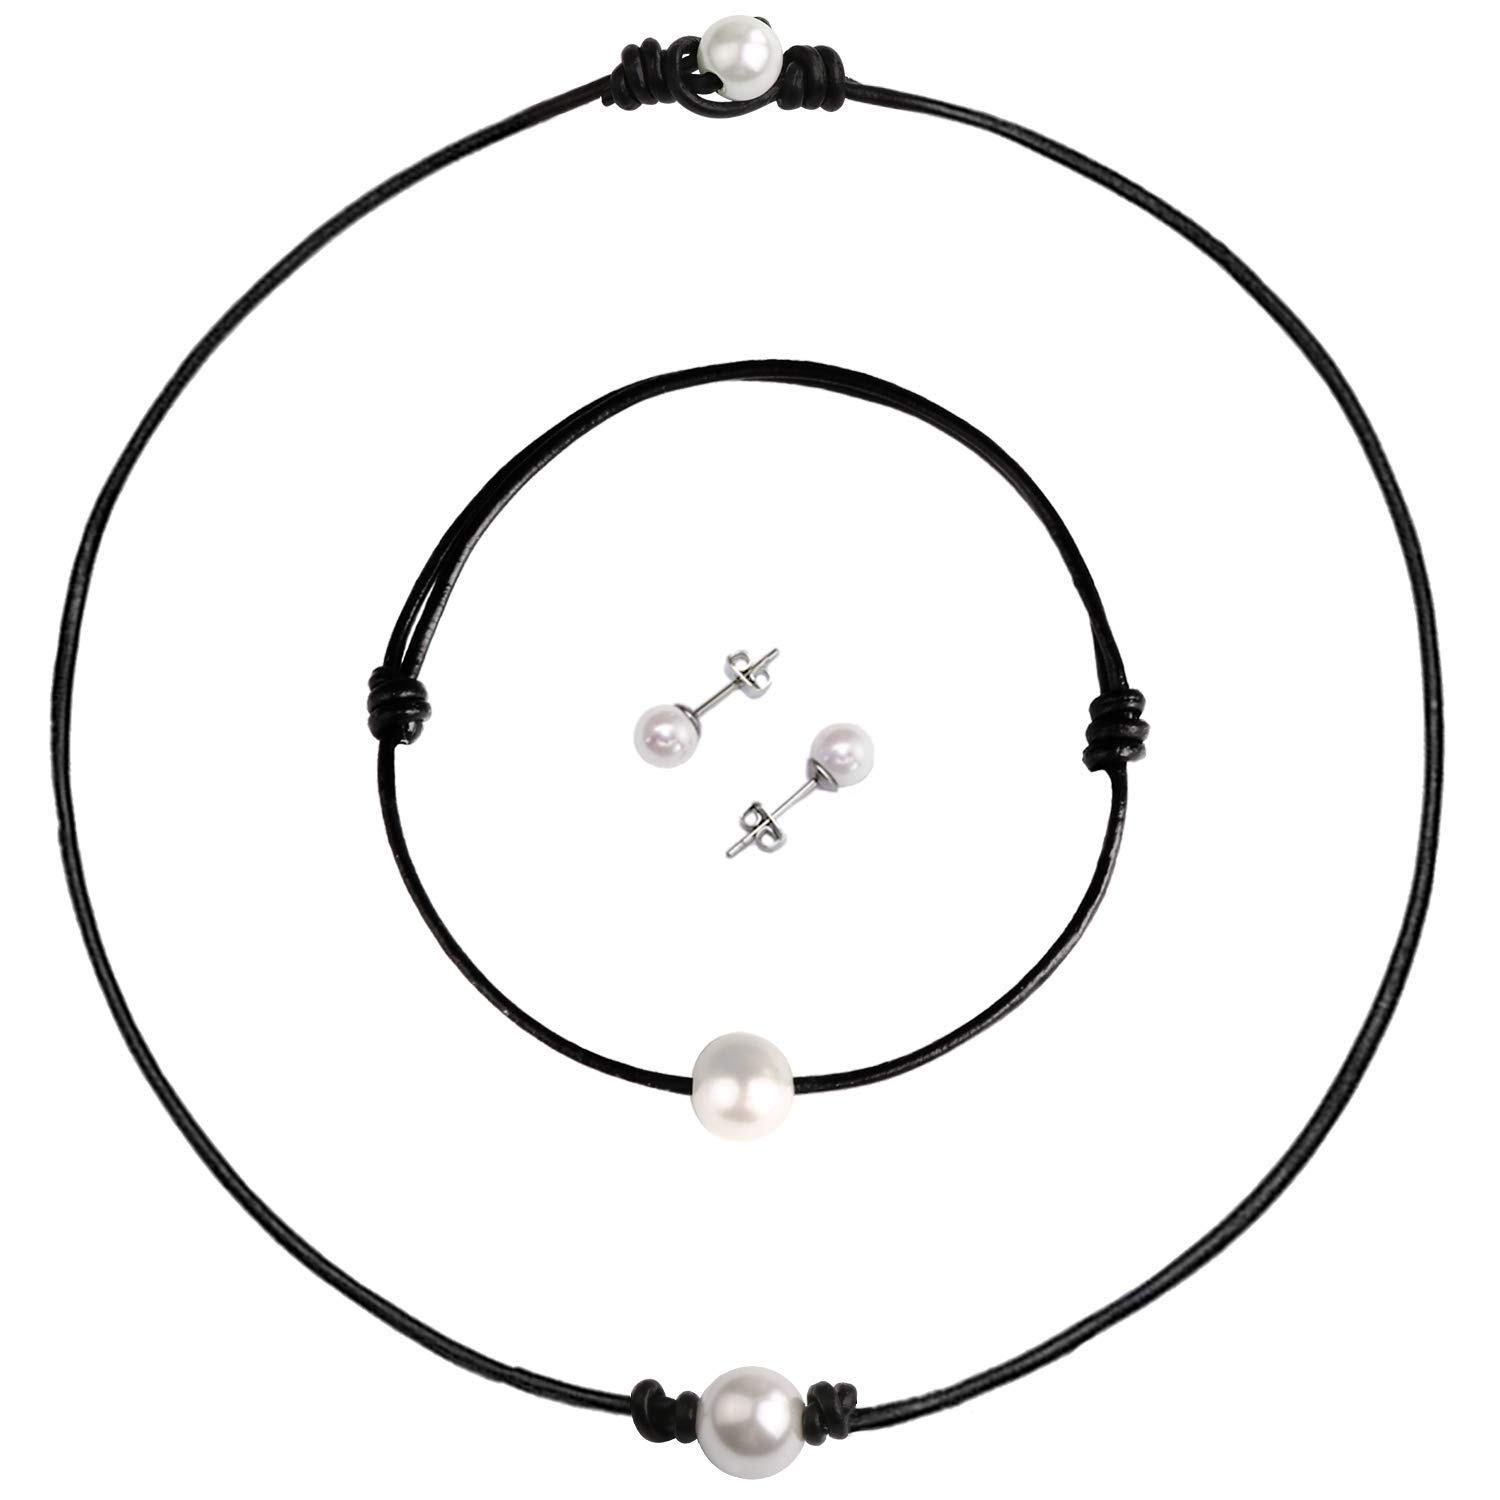 Blinkingstare Pearl Leather Choker Necklace Set – Dainty Handmade Genuine Leather Necklace, Bracelet and Earrings Set for Young Women